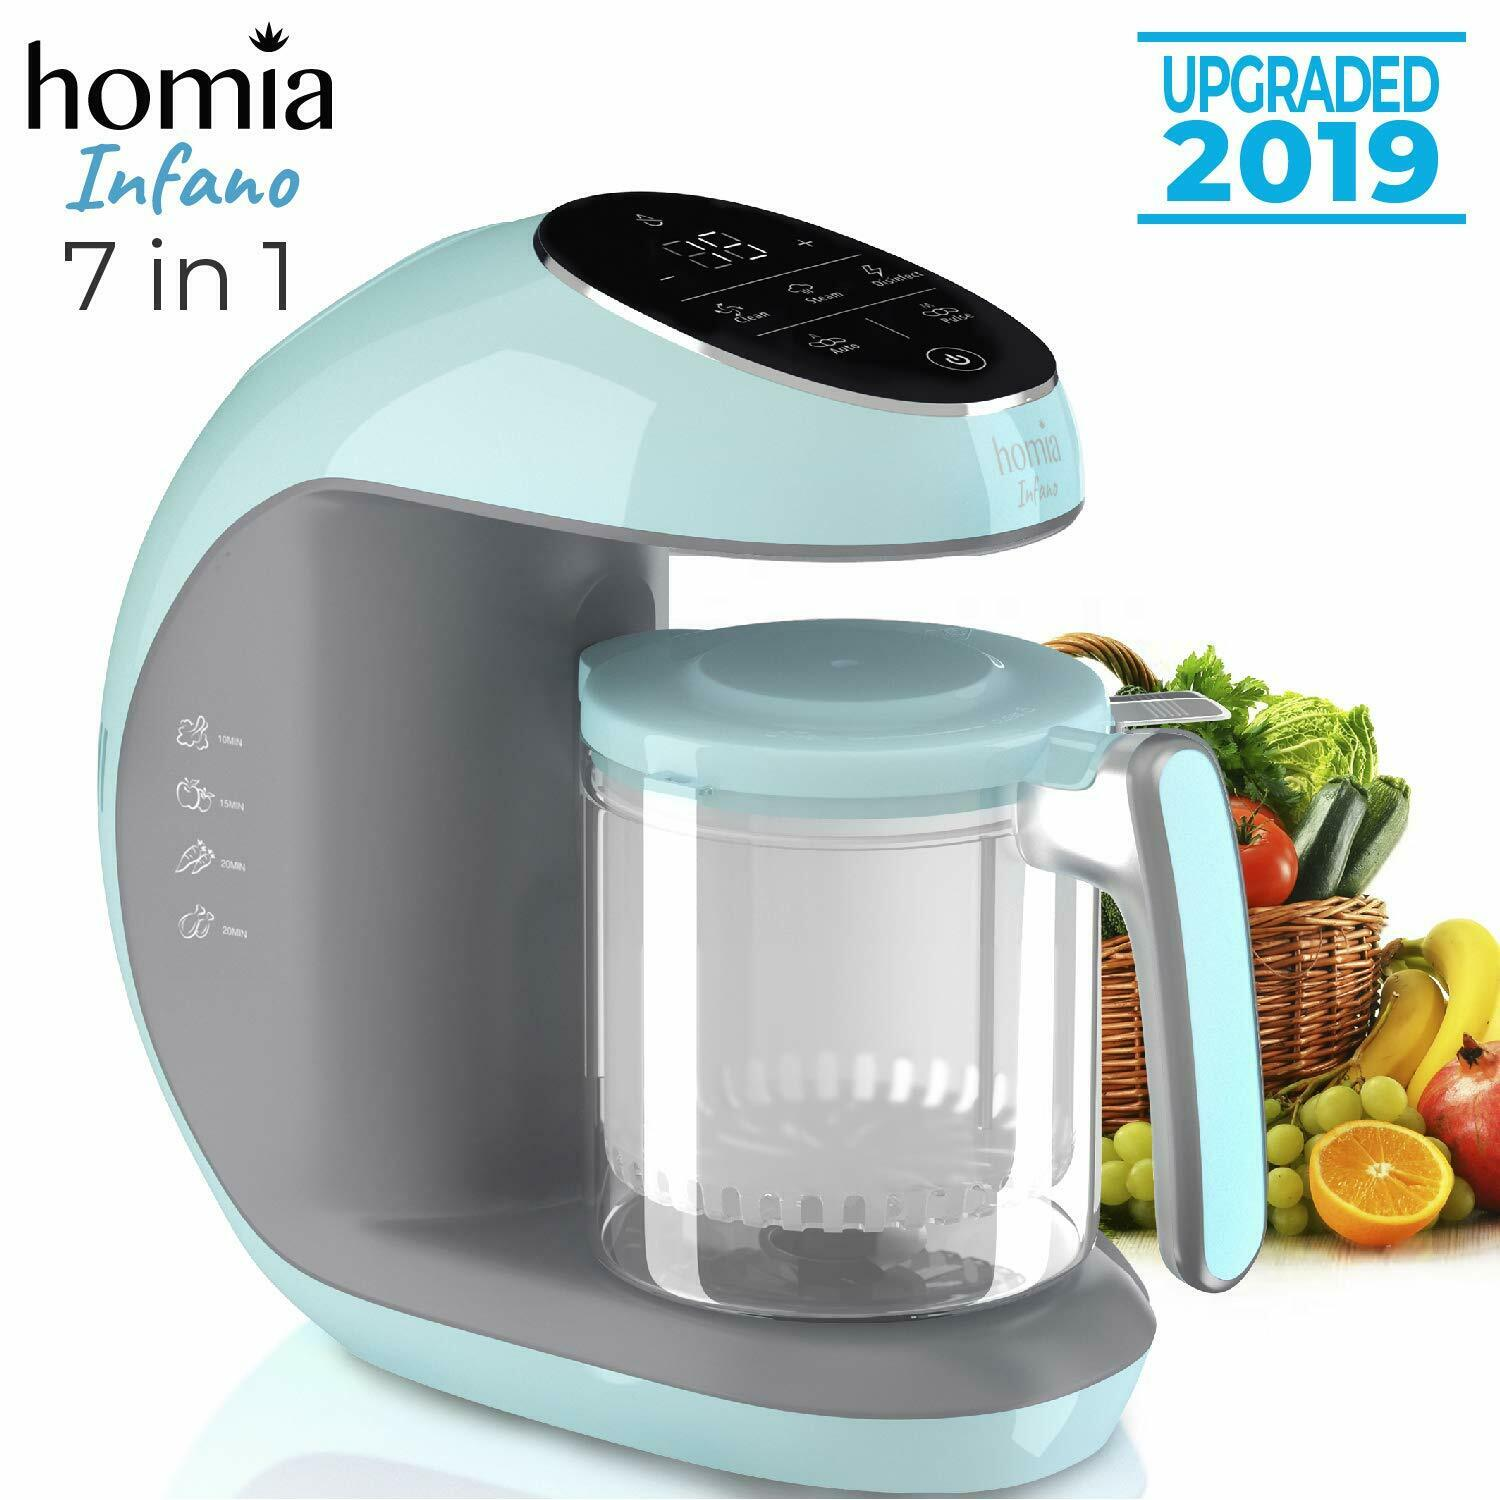 homia infano Baby Food Maker Chopper Grinder- Mills and Stea